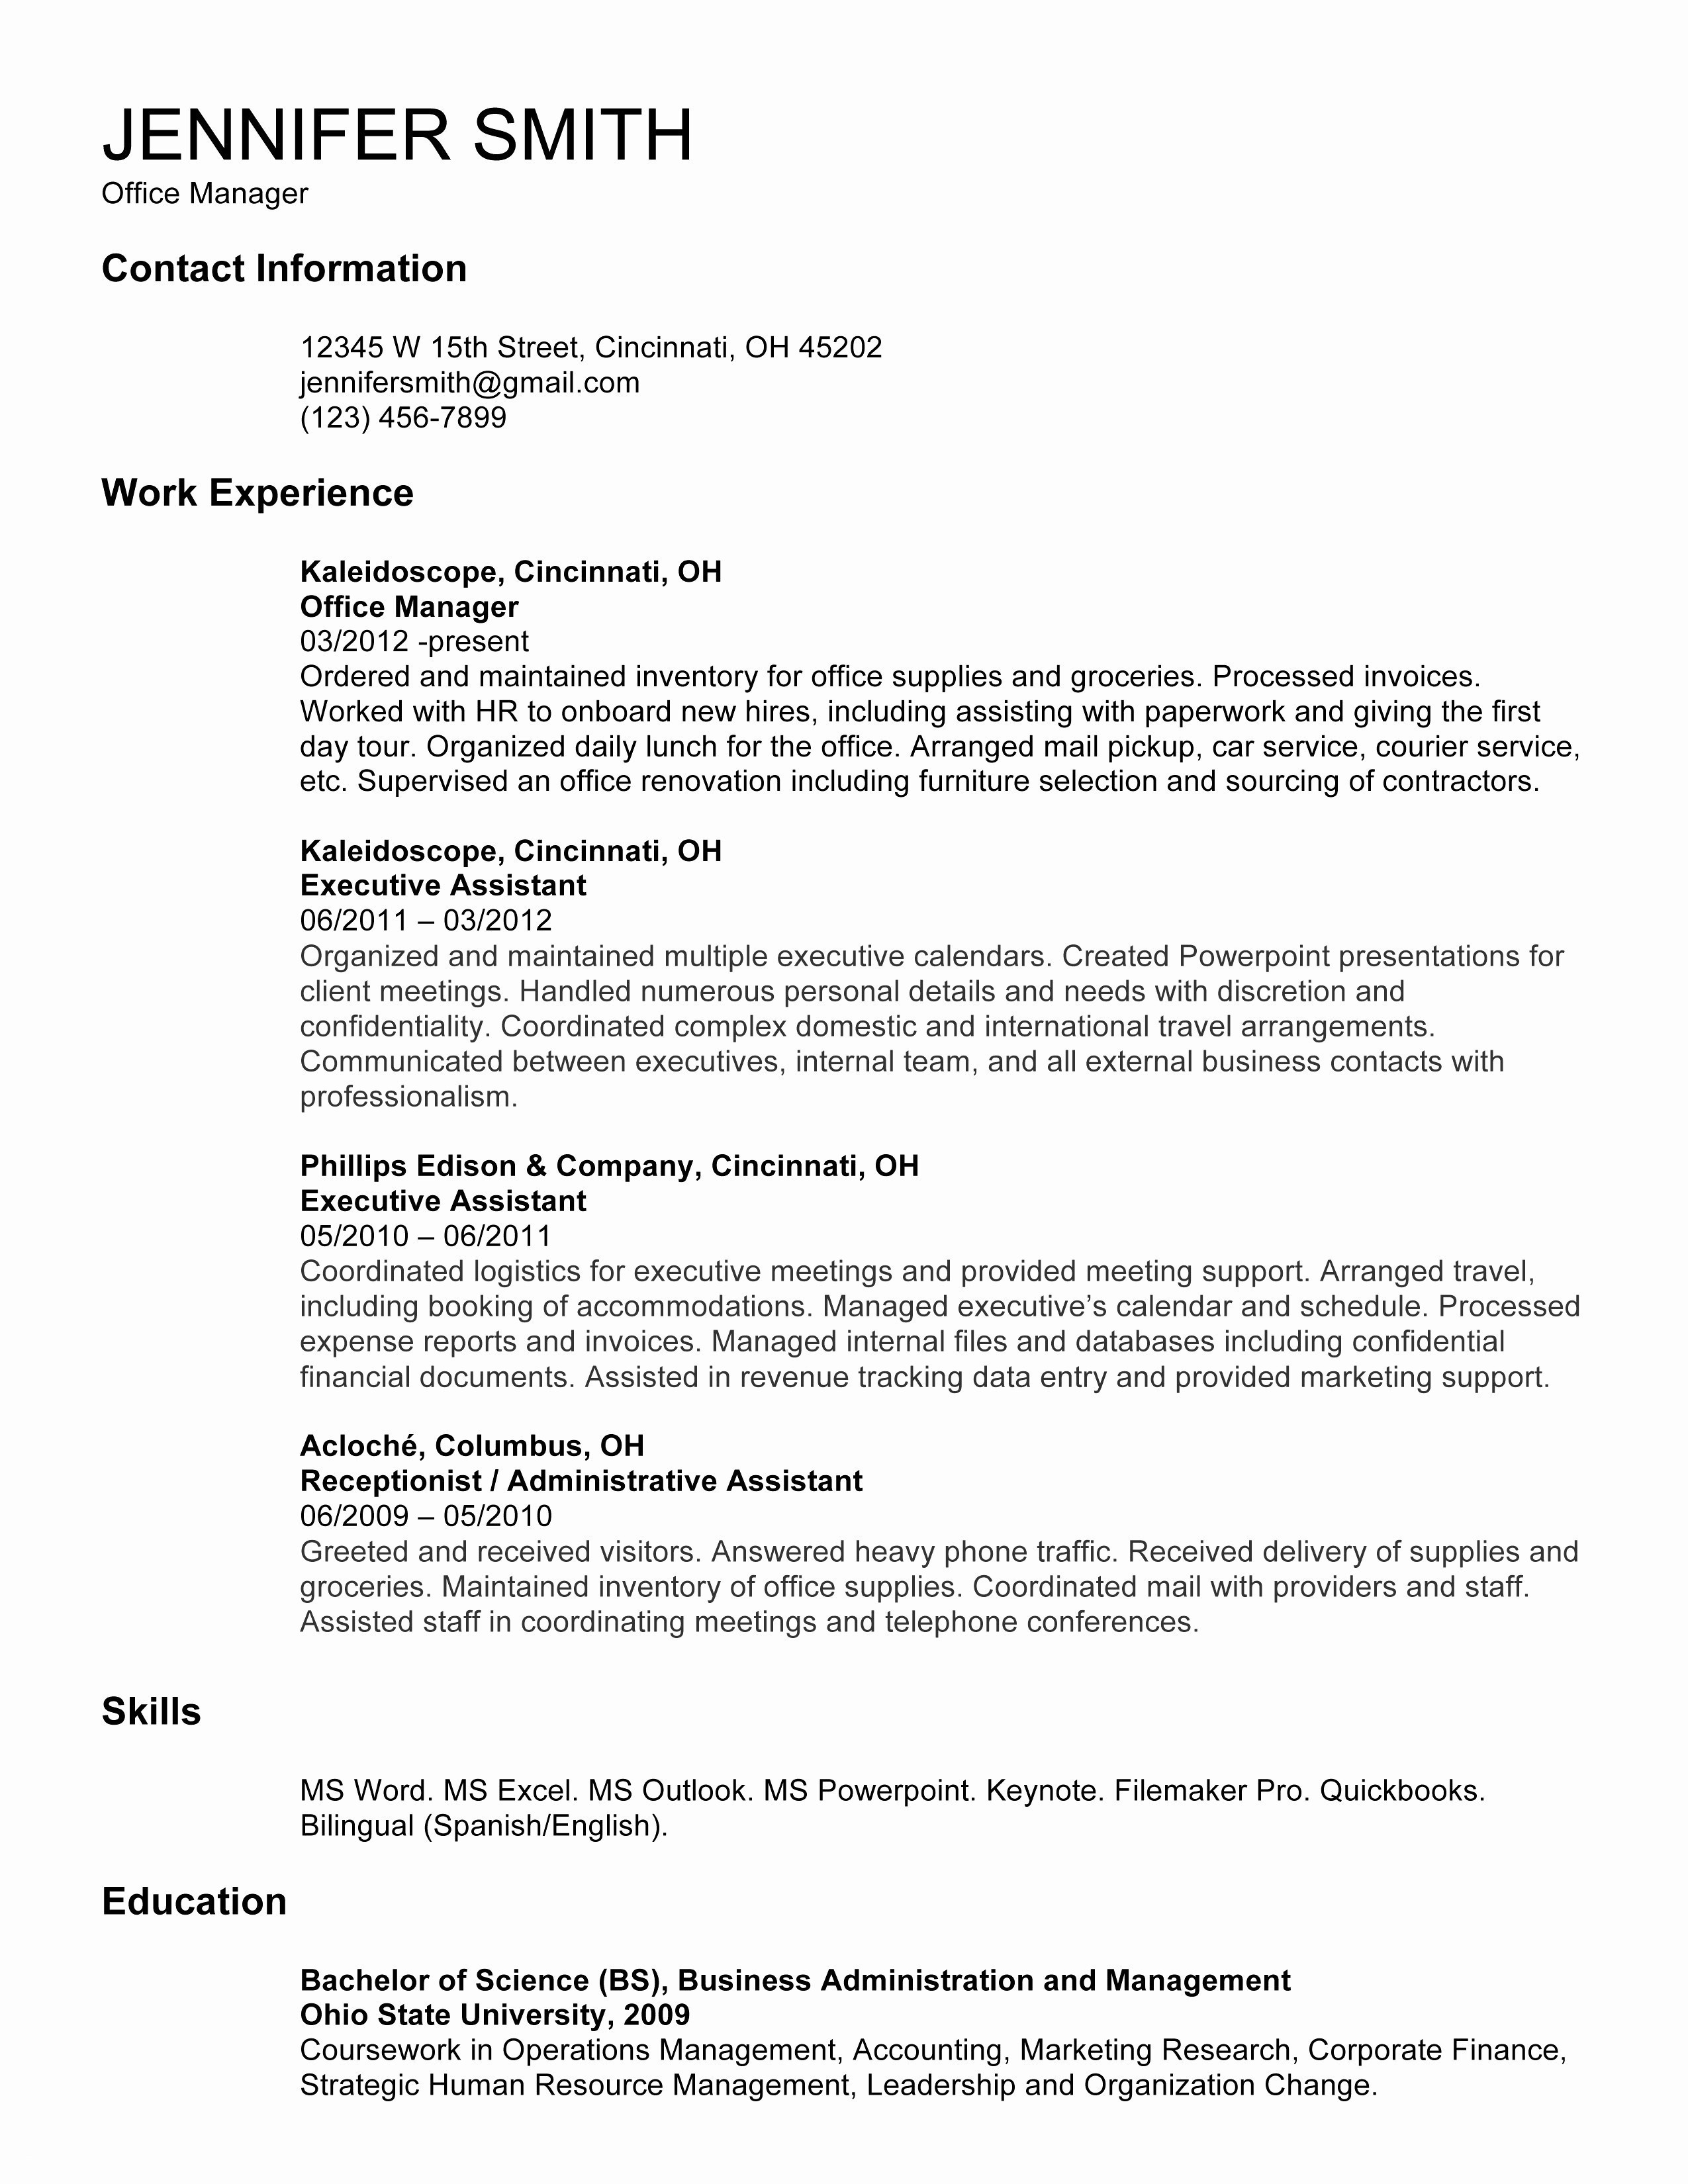 resume examples for receptionist job Collection-How To Make A Resume For A Receptionist Job Valid Fresh Reception Resume Luxury American Sample New Student 0d Where 15-c